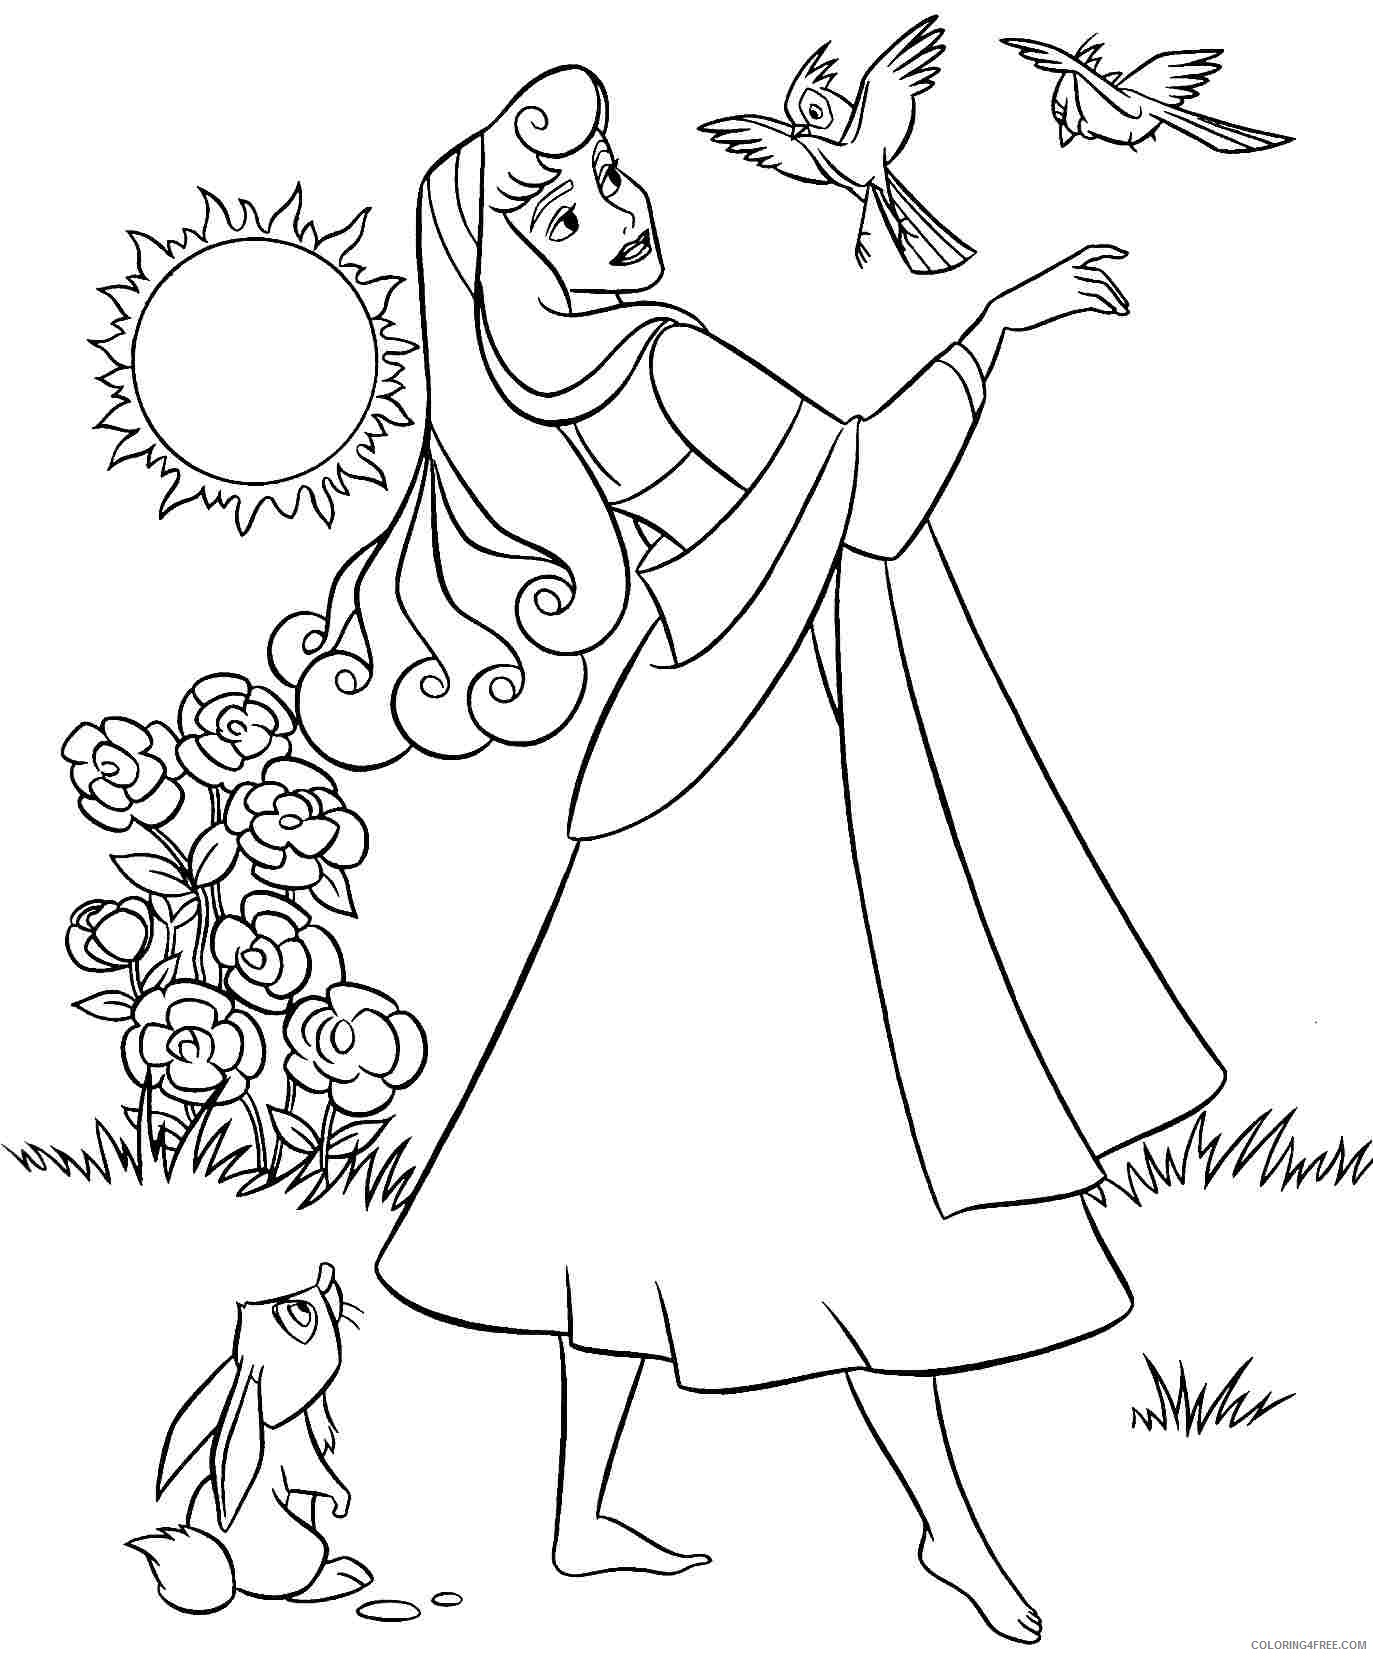 aurora coloring pages with forest animals Coloring4free